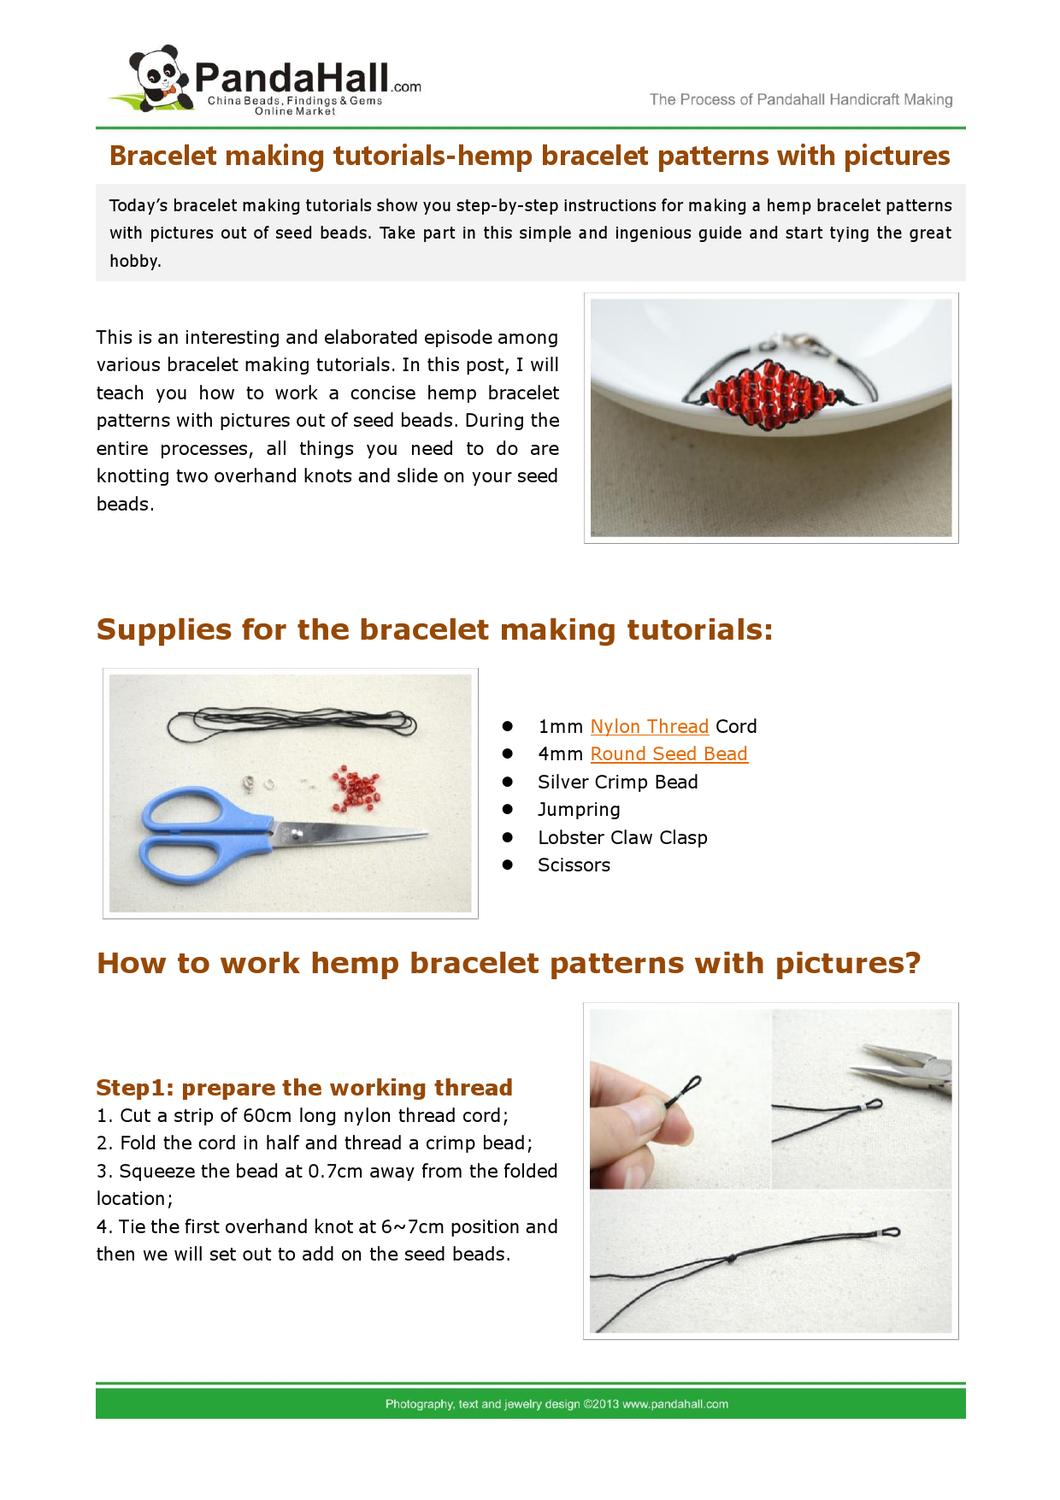 Bracelet Making Tutorials Hemp Bracelet Patterns With Pictures By Mike Stone Issuu